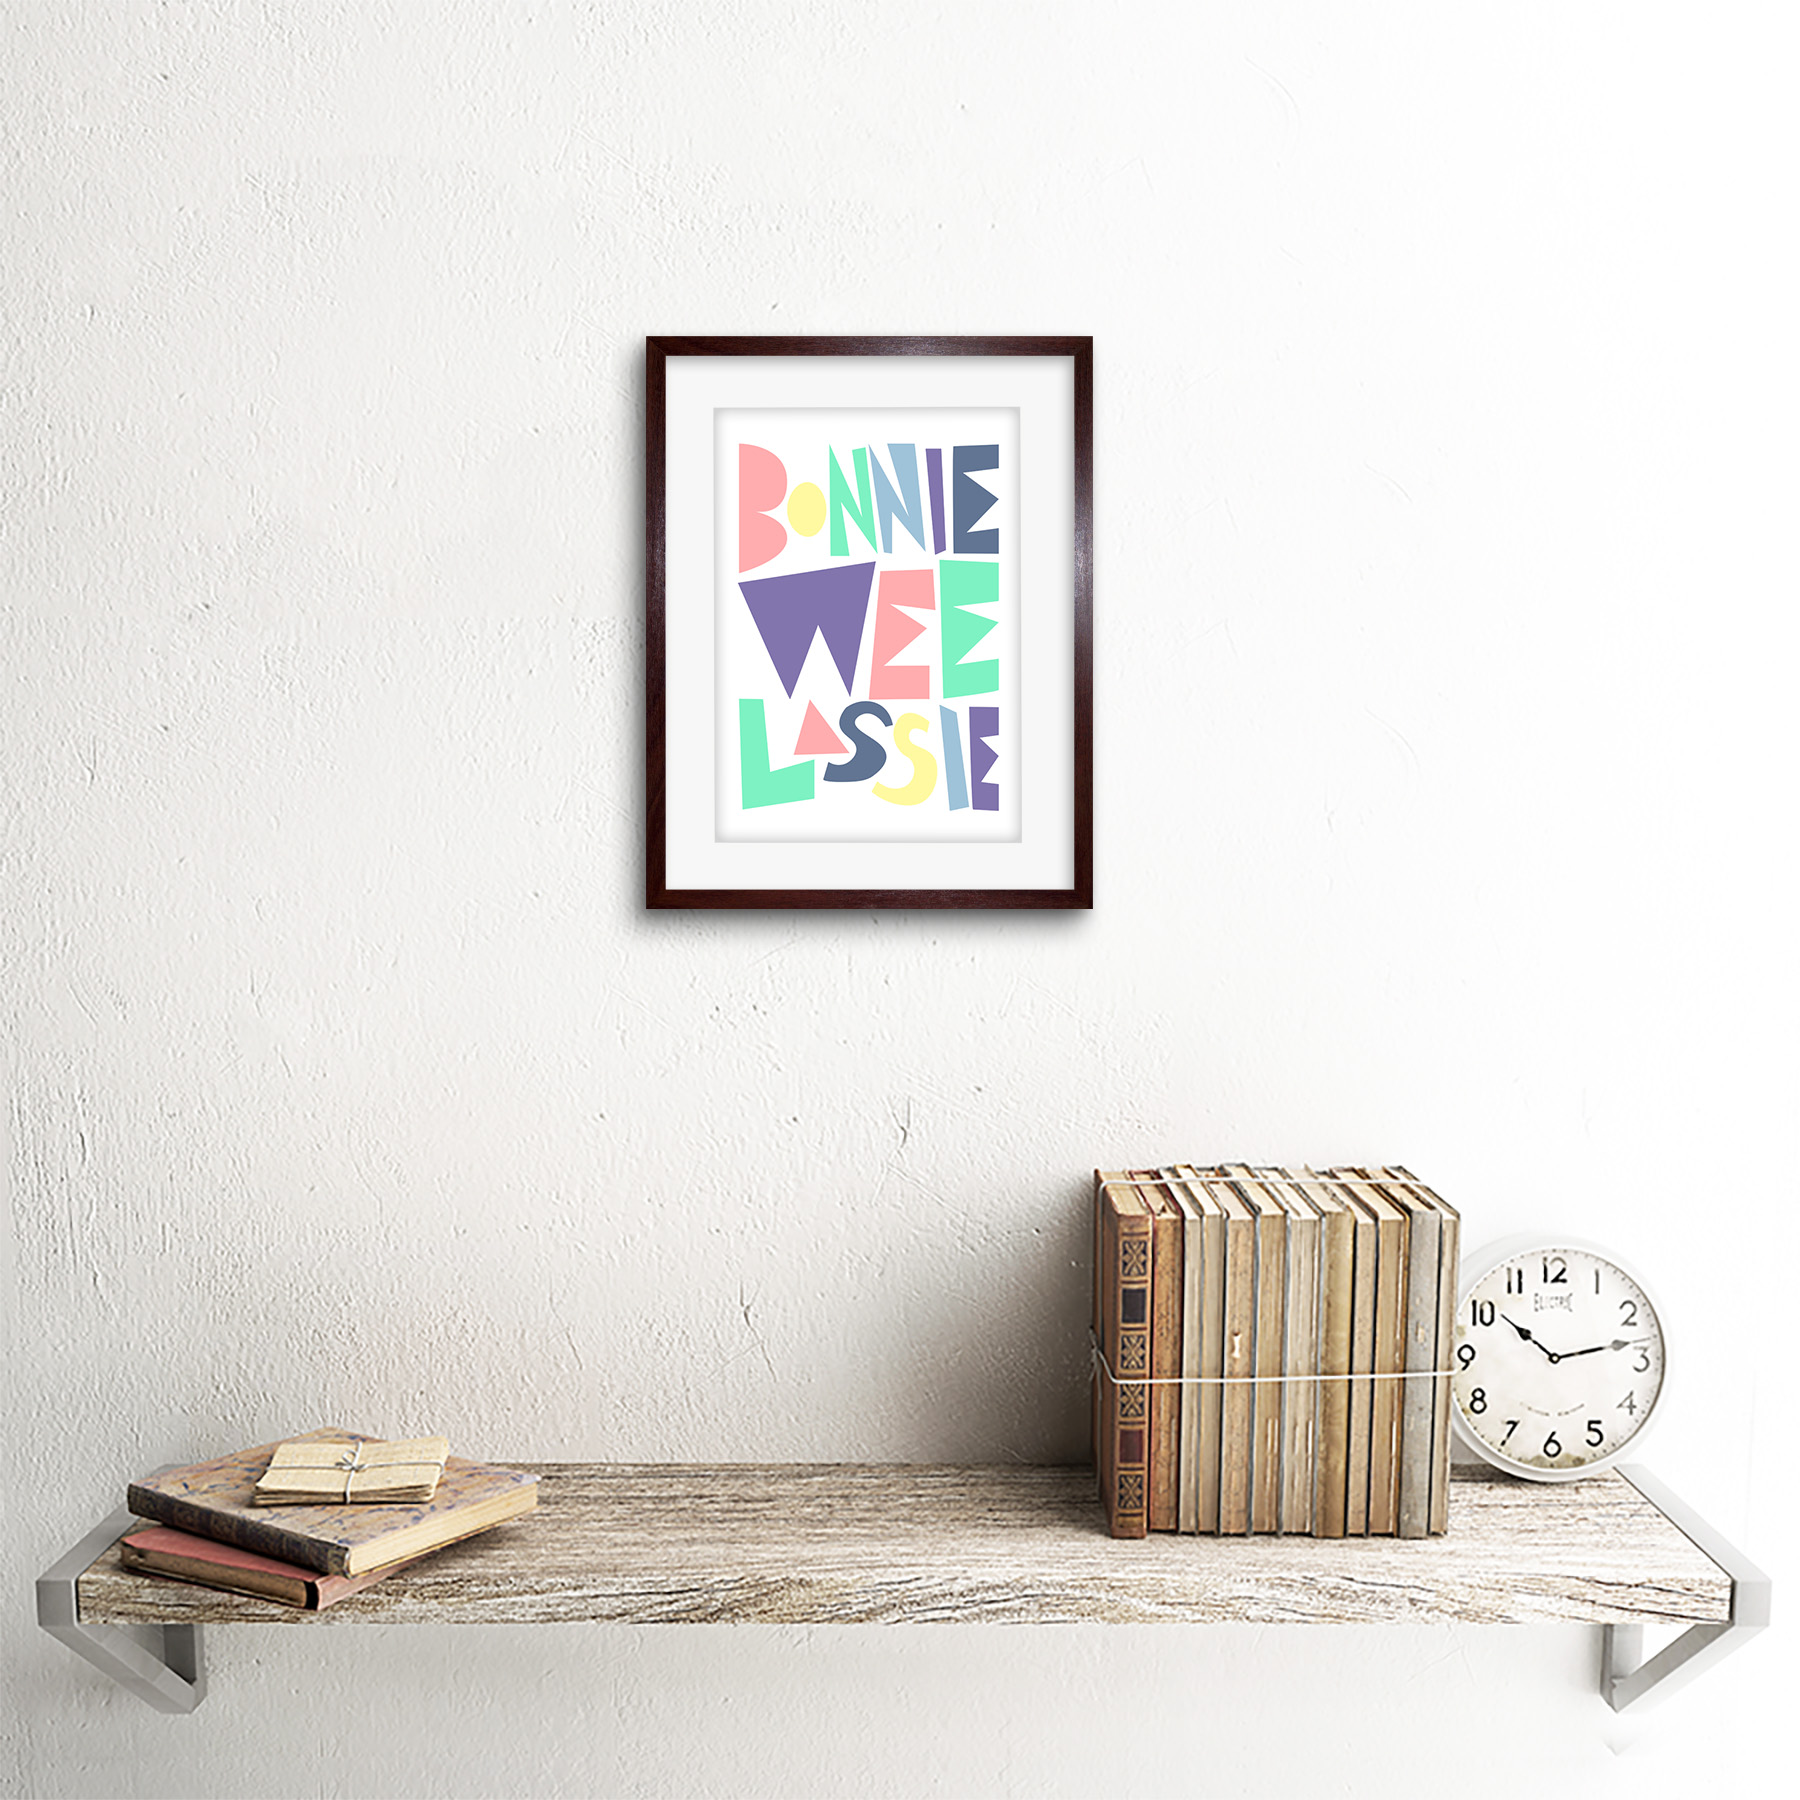 thumbnail 7 - Bonnie Wee LASSIE New Baby Girl Scottish Colourful Framed Wall Art Print